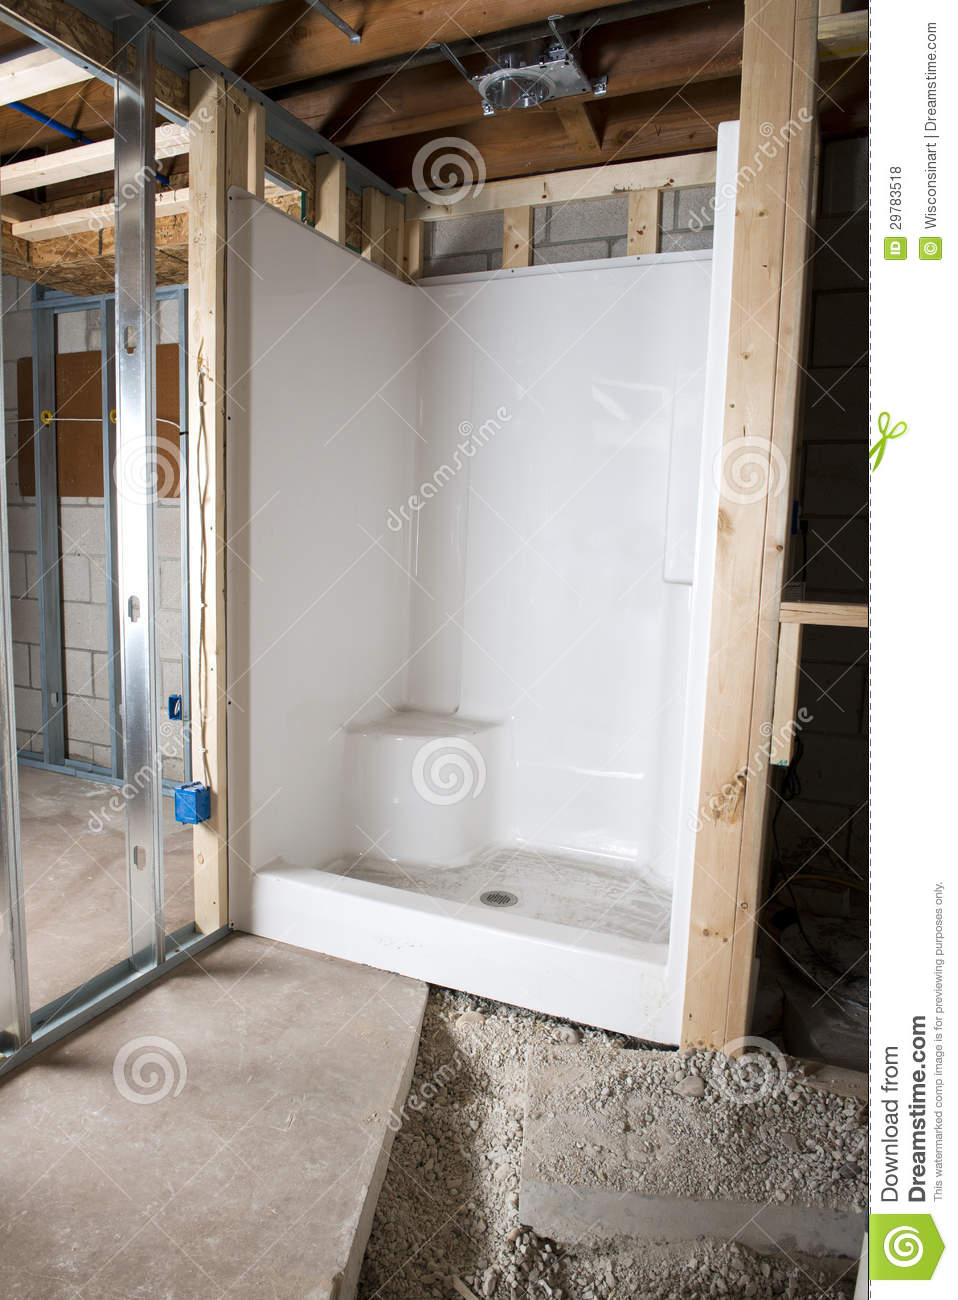 New bathroom shower stall home improvement royalty free for Bathroom home improvement